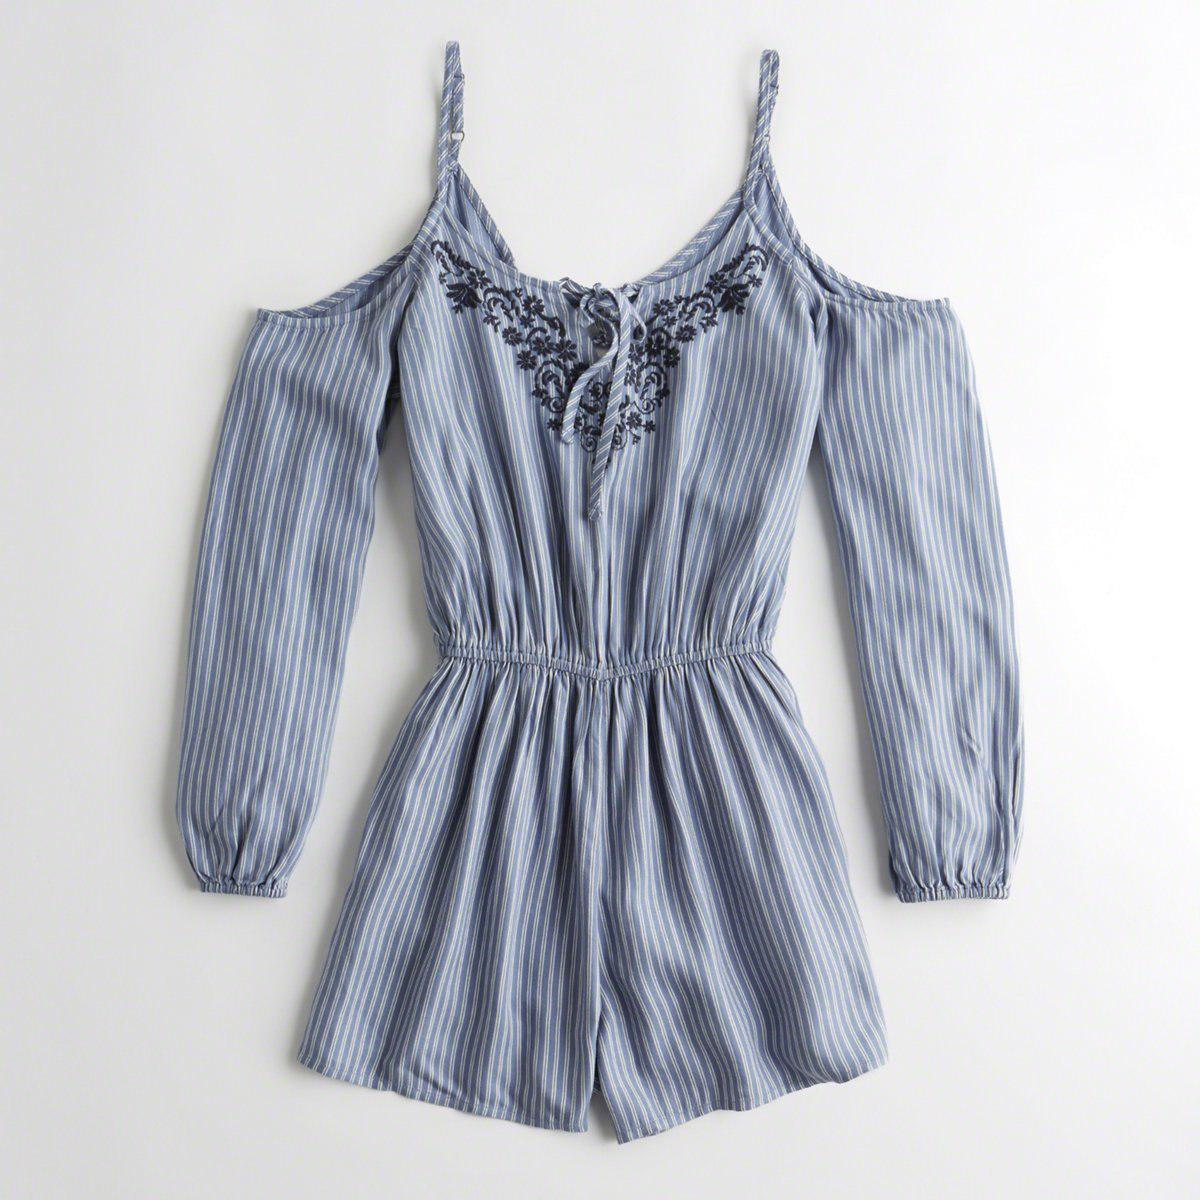 d6afdd5b7118 Hollister. Women s Blue Girls Embroidered Cold Shoulder Romper From  Hollister